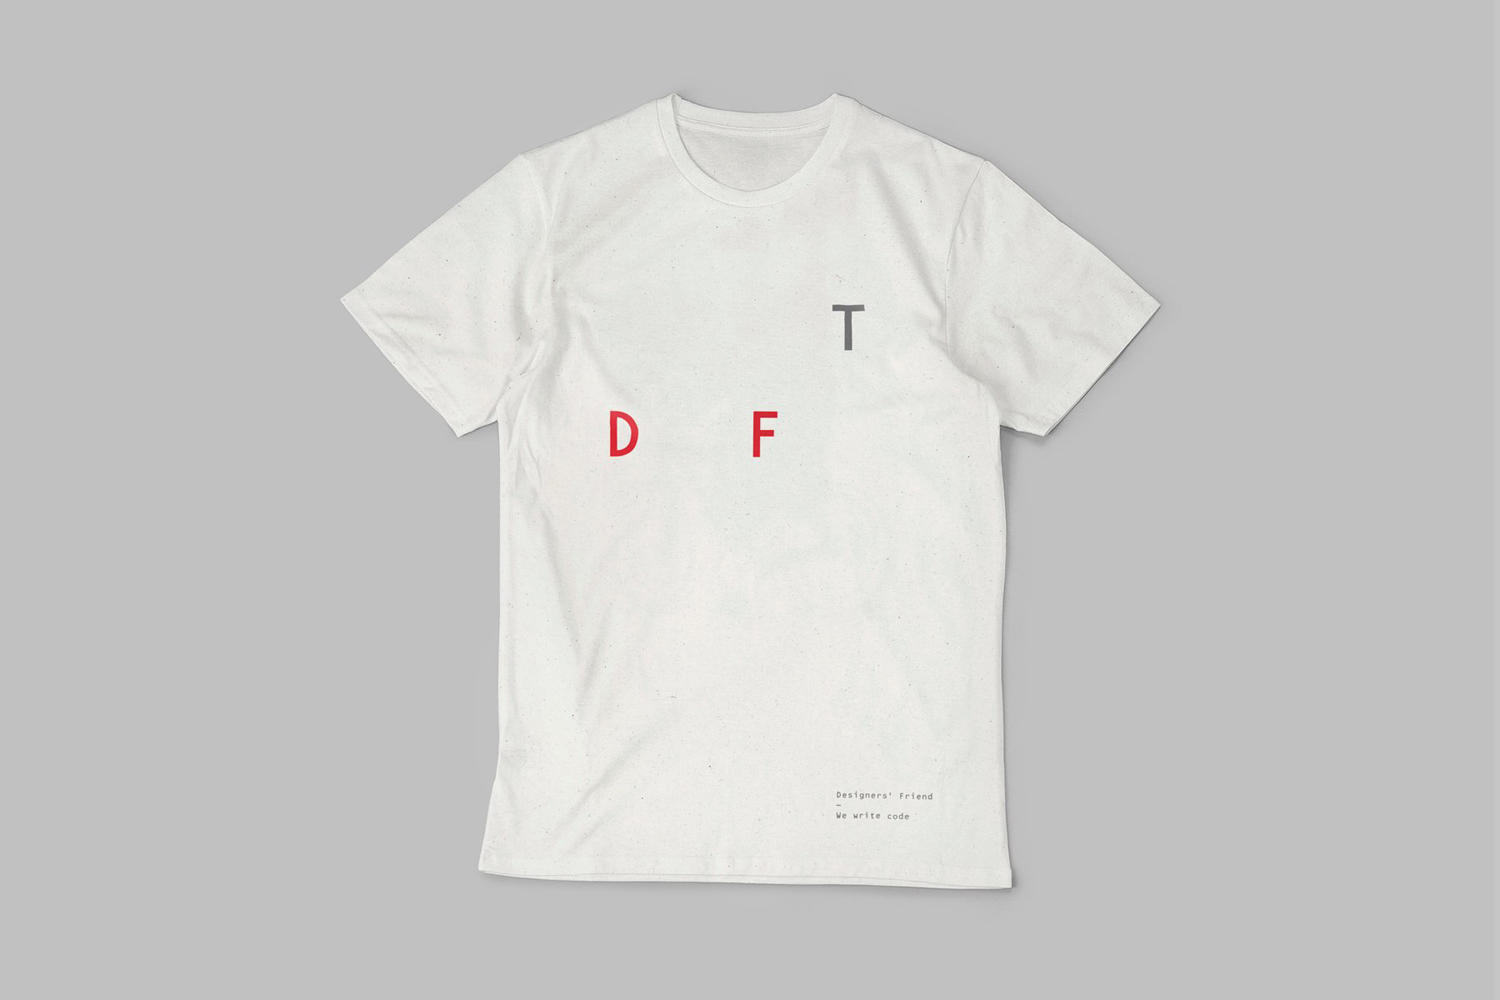 Brand identity and t-shirt by London-based graphic design studio Paul Belford Ltd. for web development business Designers' Friend.